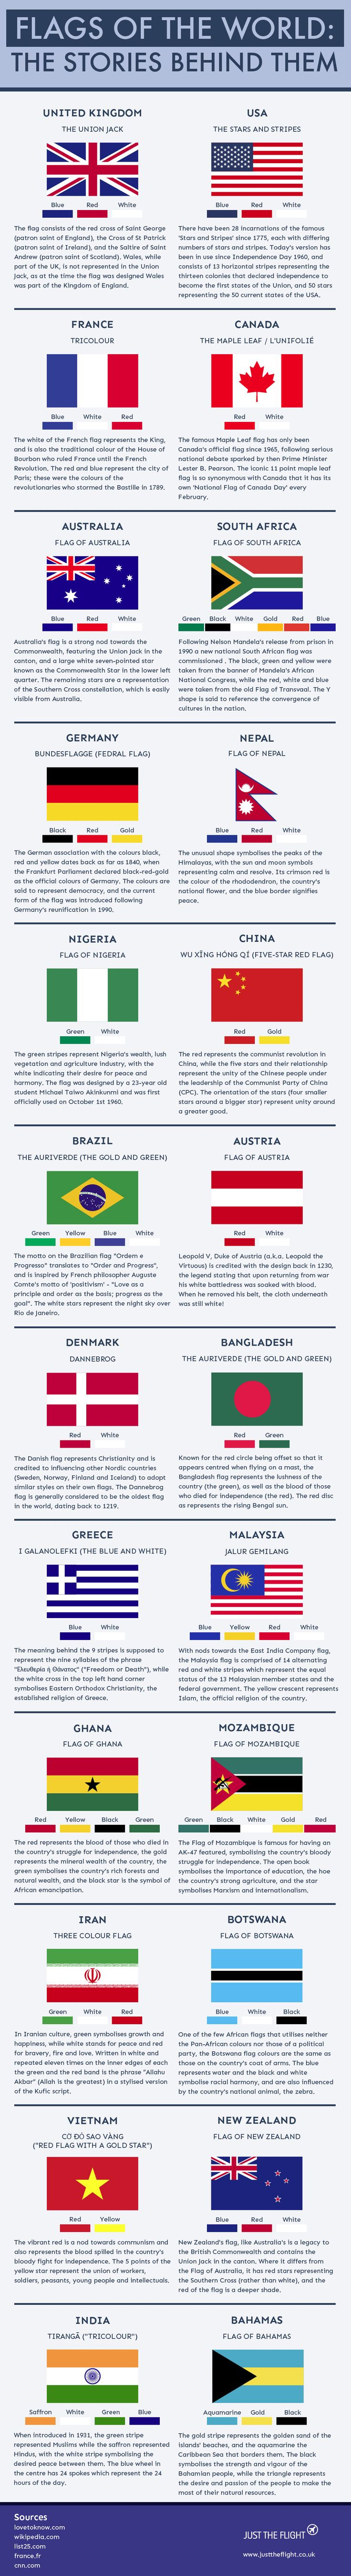 Flags of the World: The Stories Behind Them #infographic #Flags #Travel                                                                                                                                                                                 More